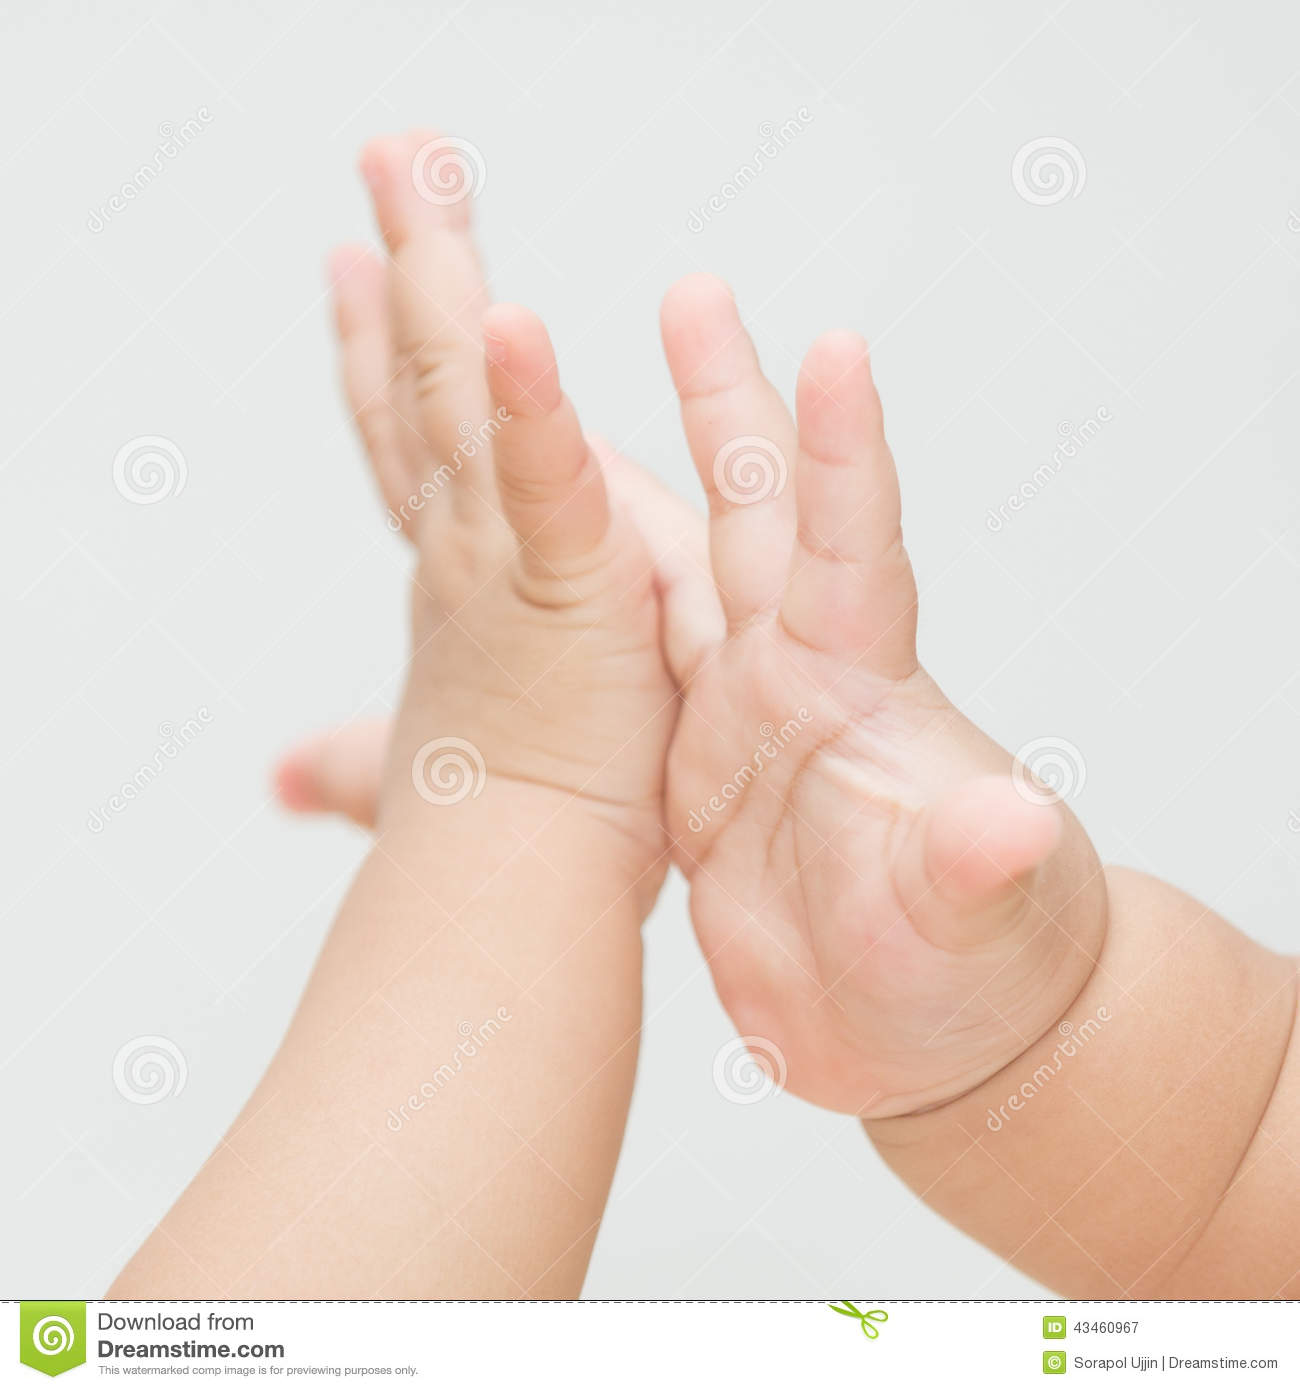 Close-up woman touching hands together Photo | Free Download |Touching Hands Together